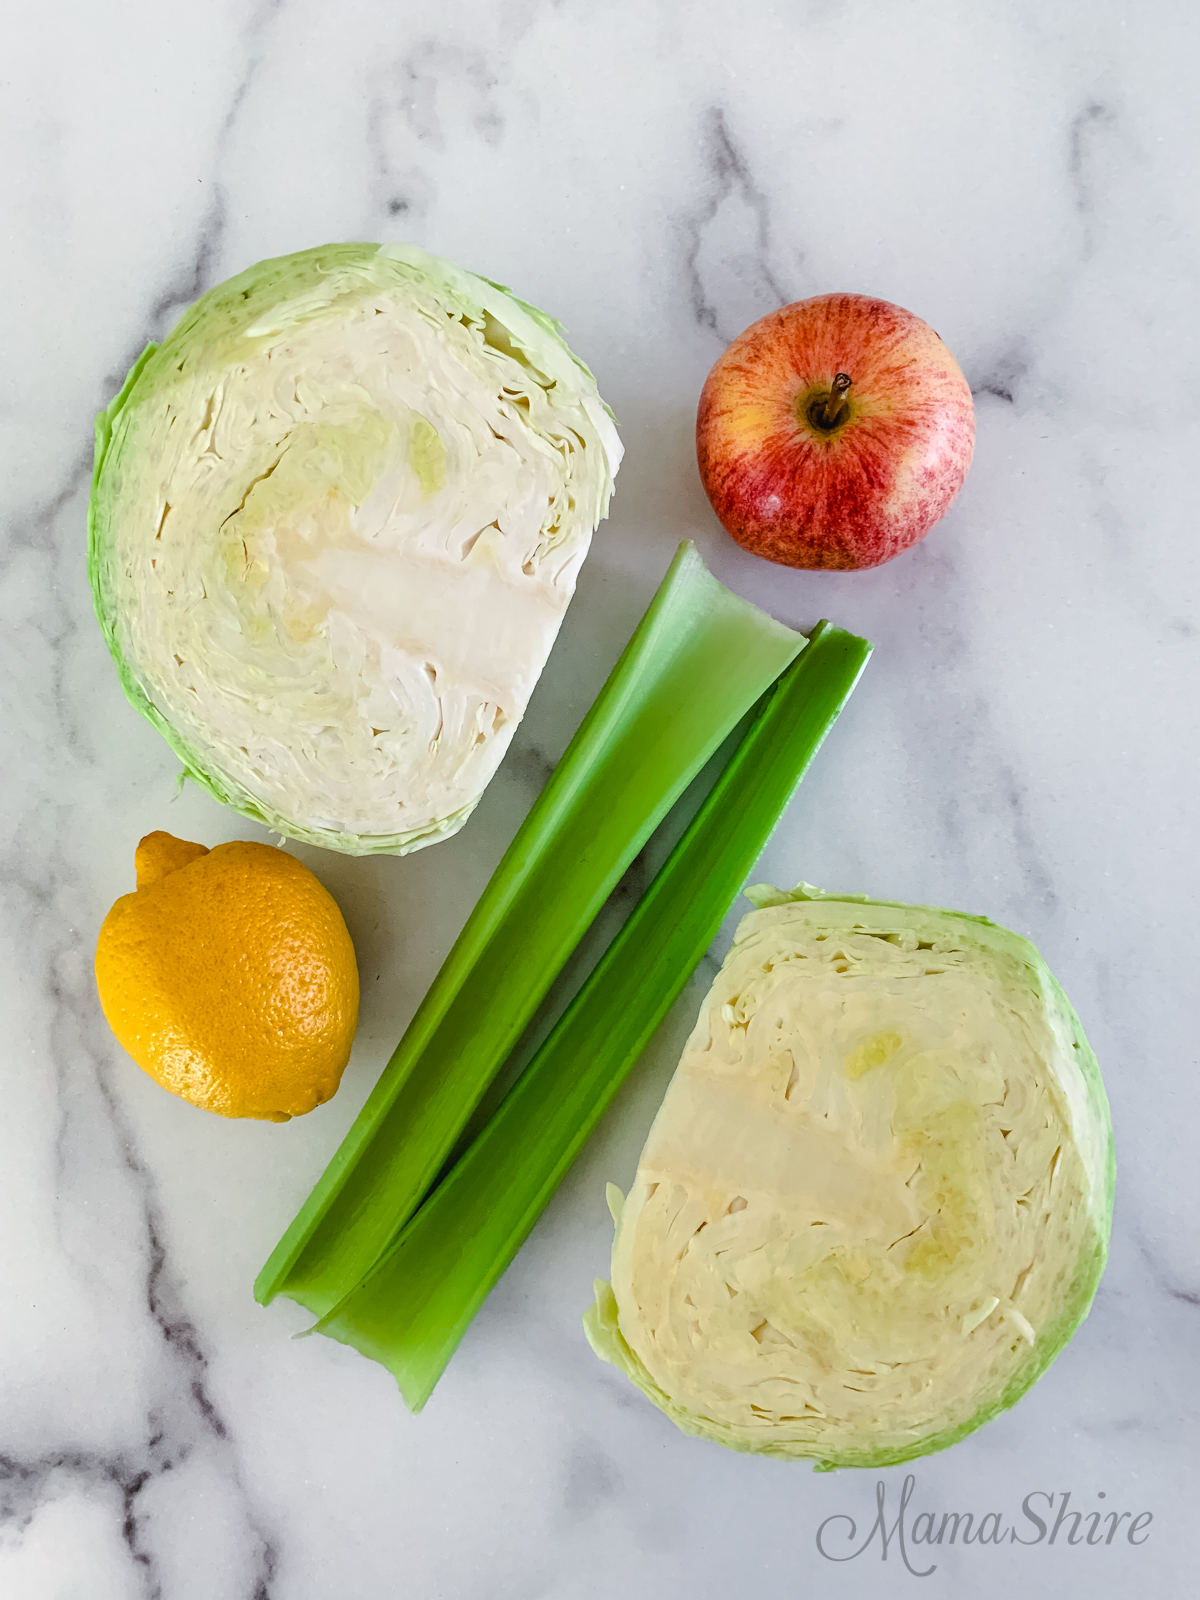 Pictured are some of the ingredients used in this coleslaw, they are cabbage, celery, apple, lemon juice.